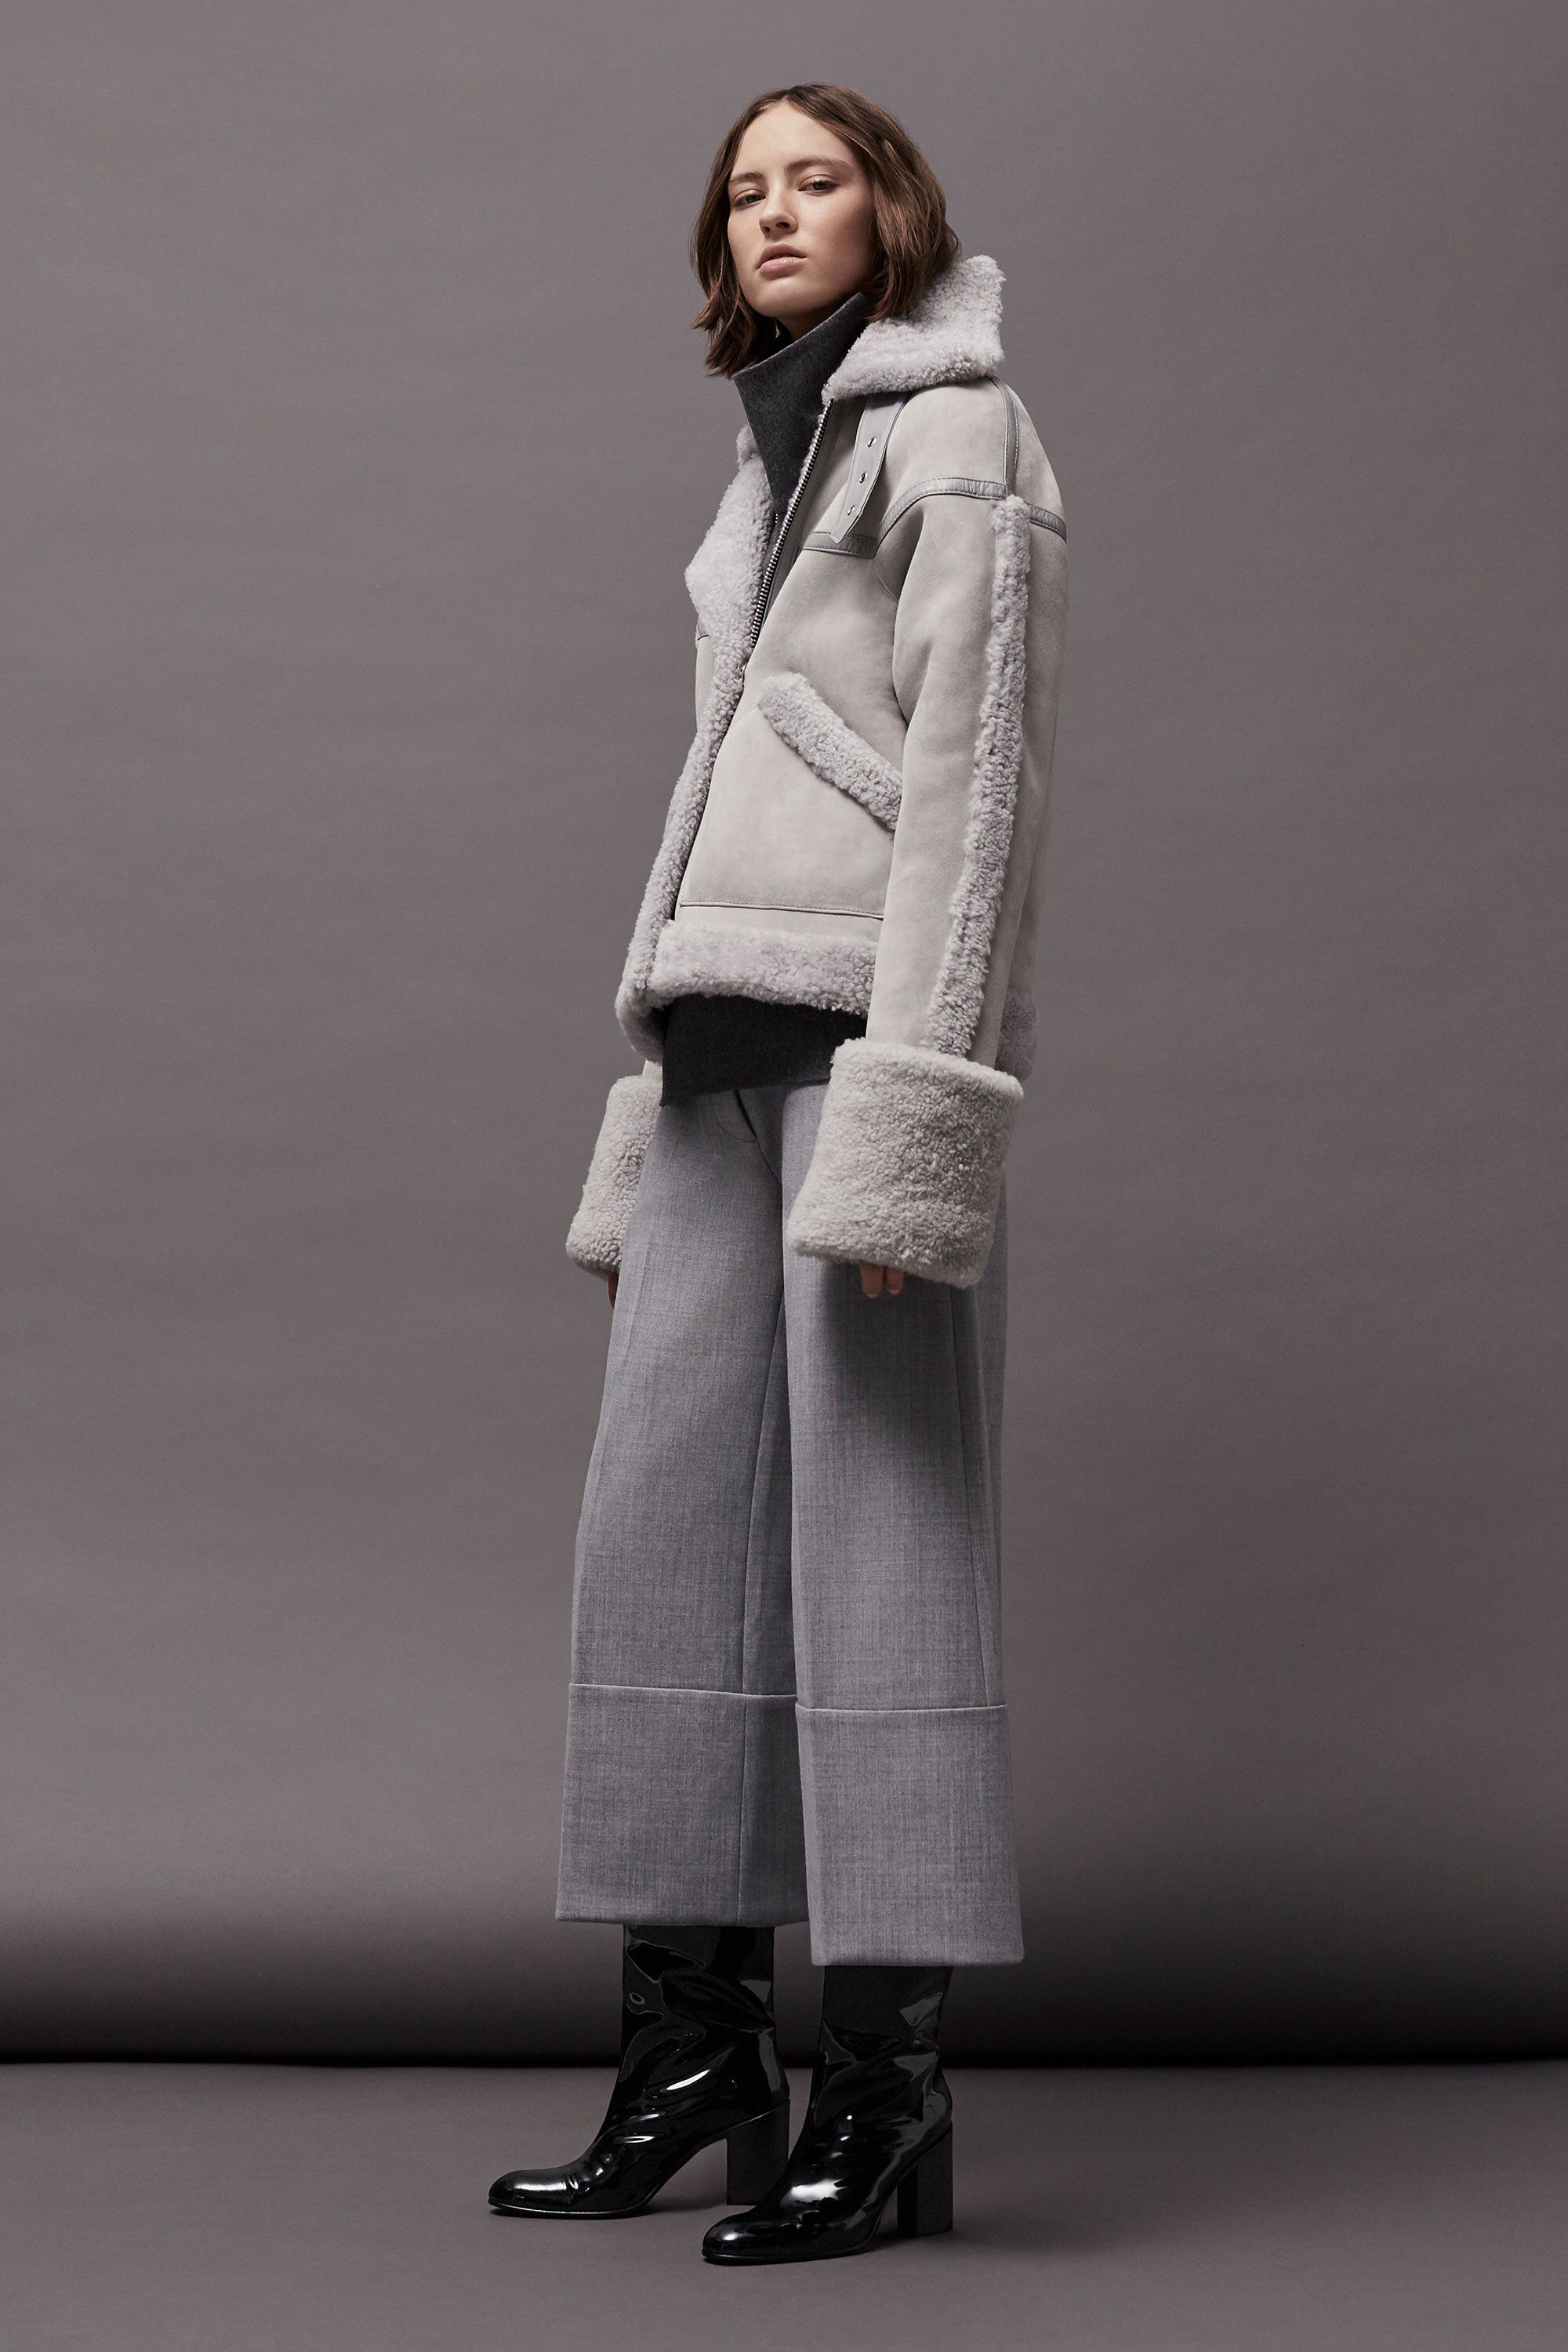 Victoria Victoria Beckham -  Fall 2017 Ready-to-Wear